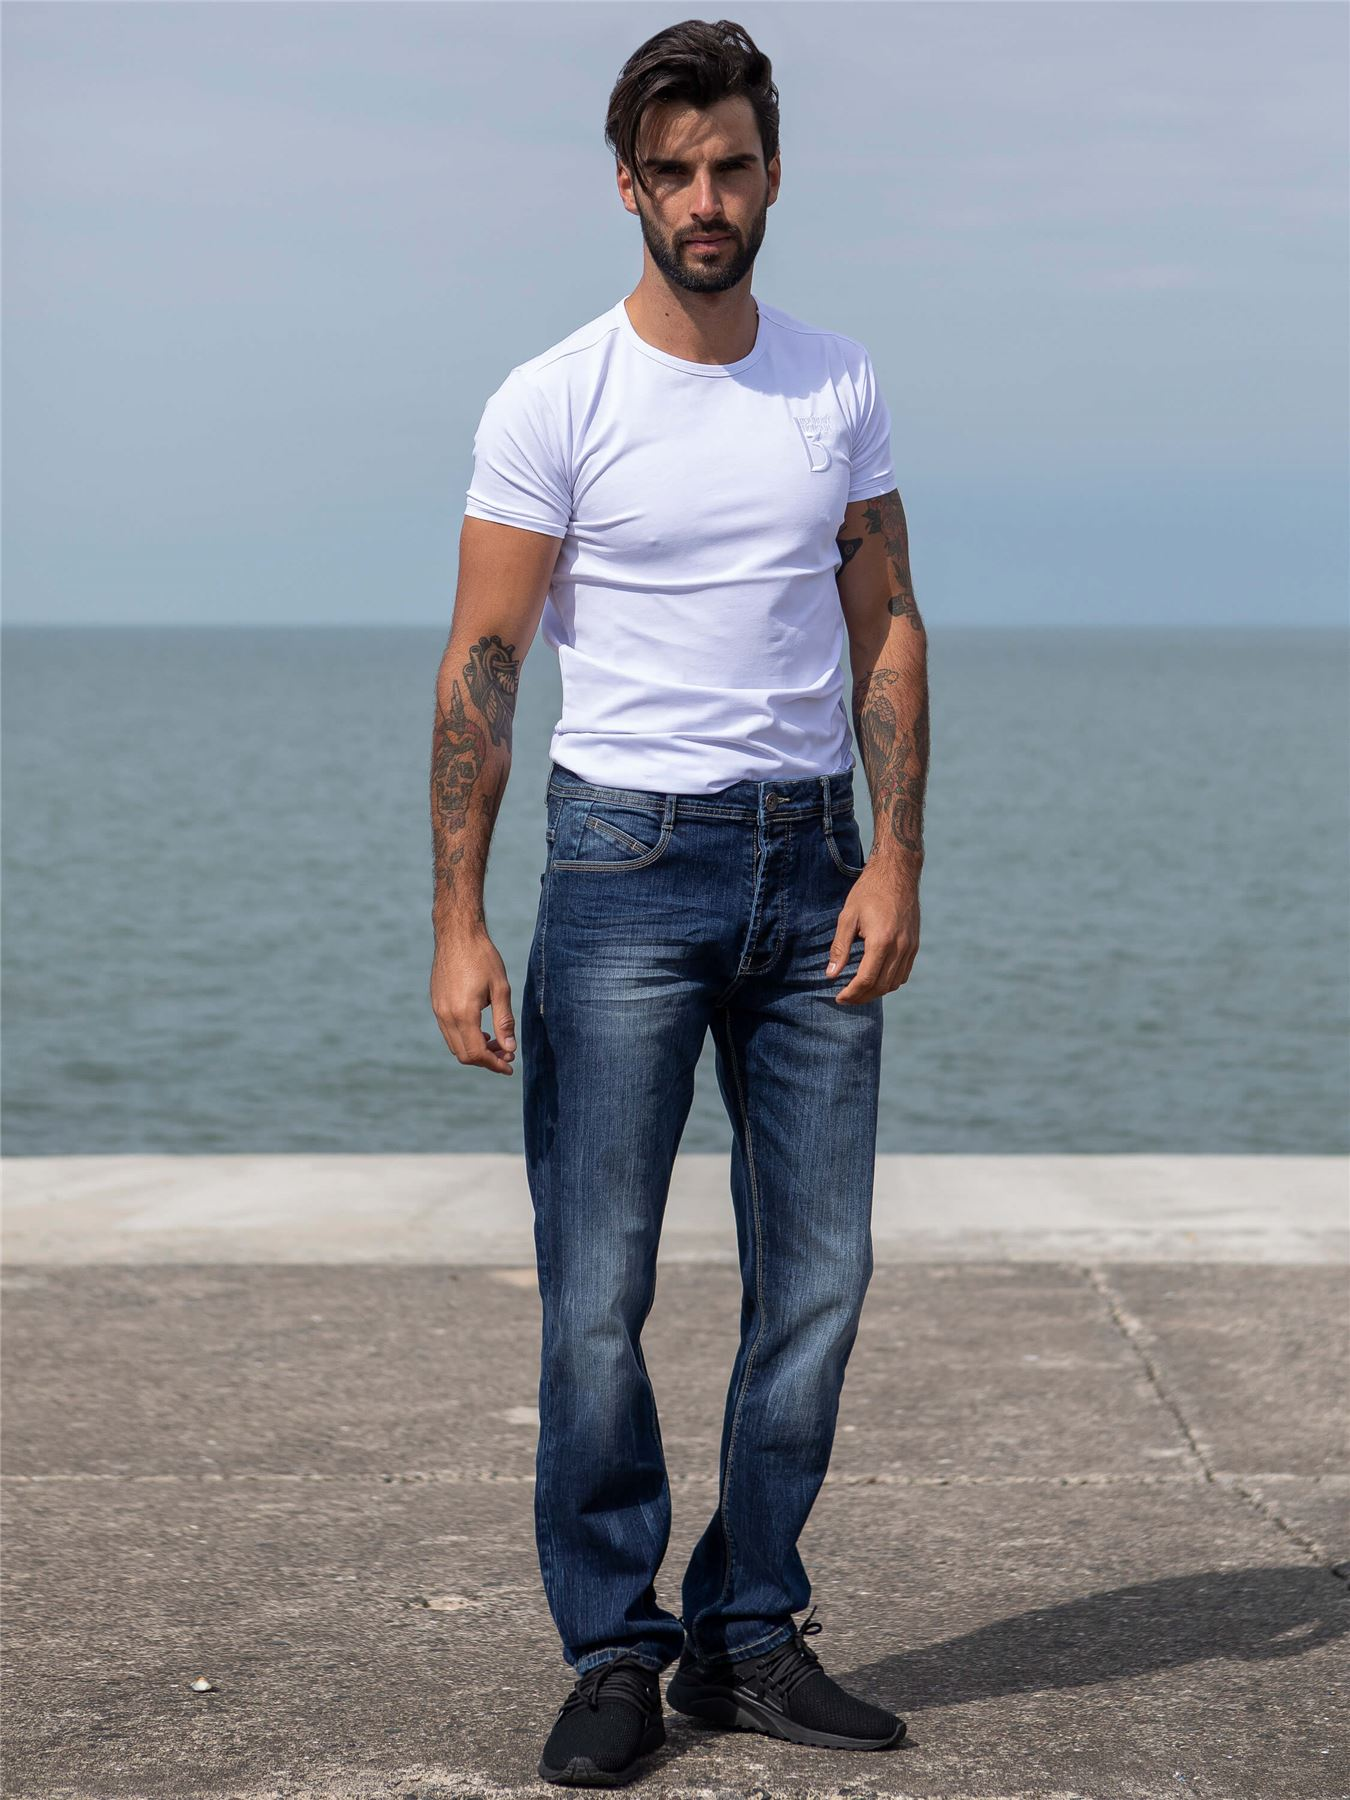 Eto-Designer-Mens-Tapered-Jeans-Slim-Fit-Stretch-Denim-Trouser-Pants-All-Waists thumbnail 11